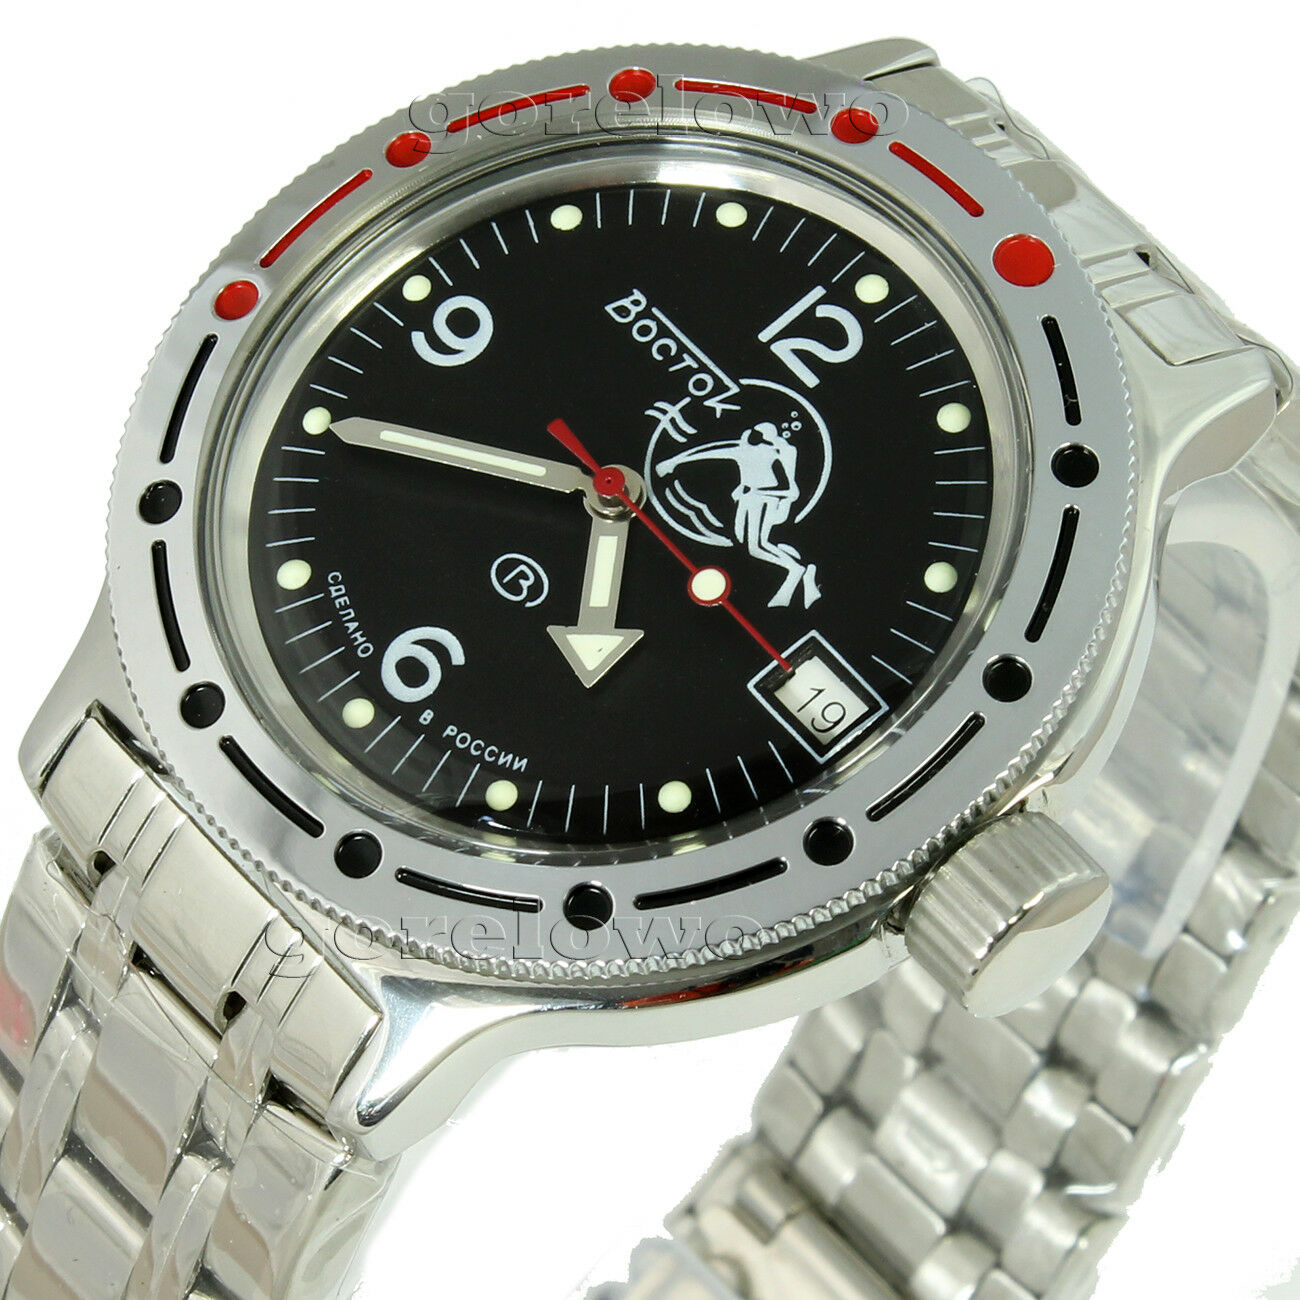 htm sports watches reviews watch mens divers seiko solar scuba